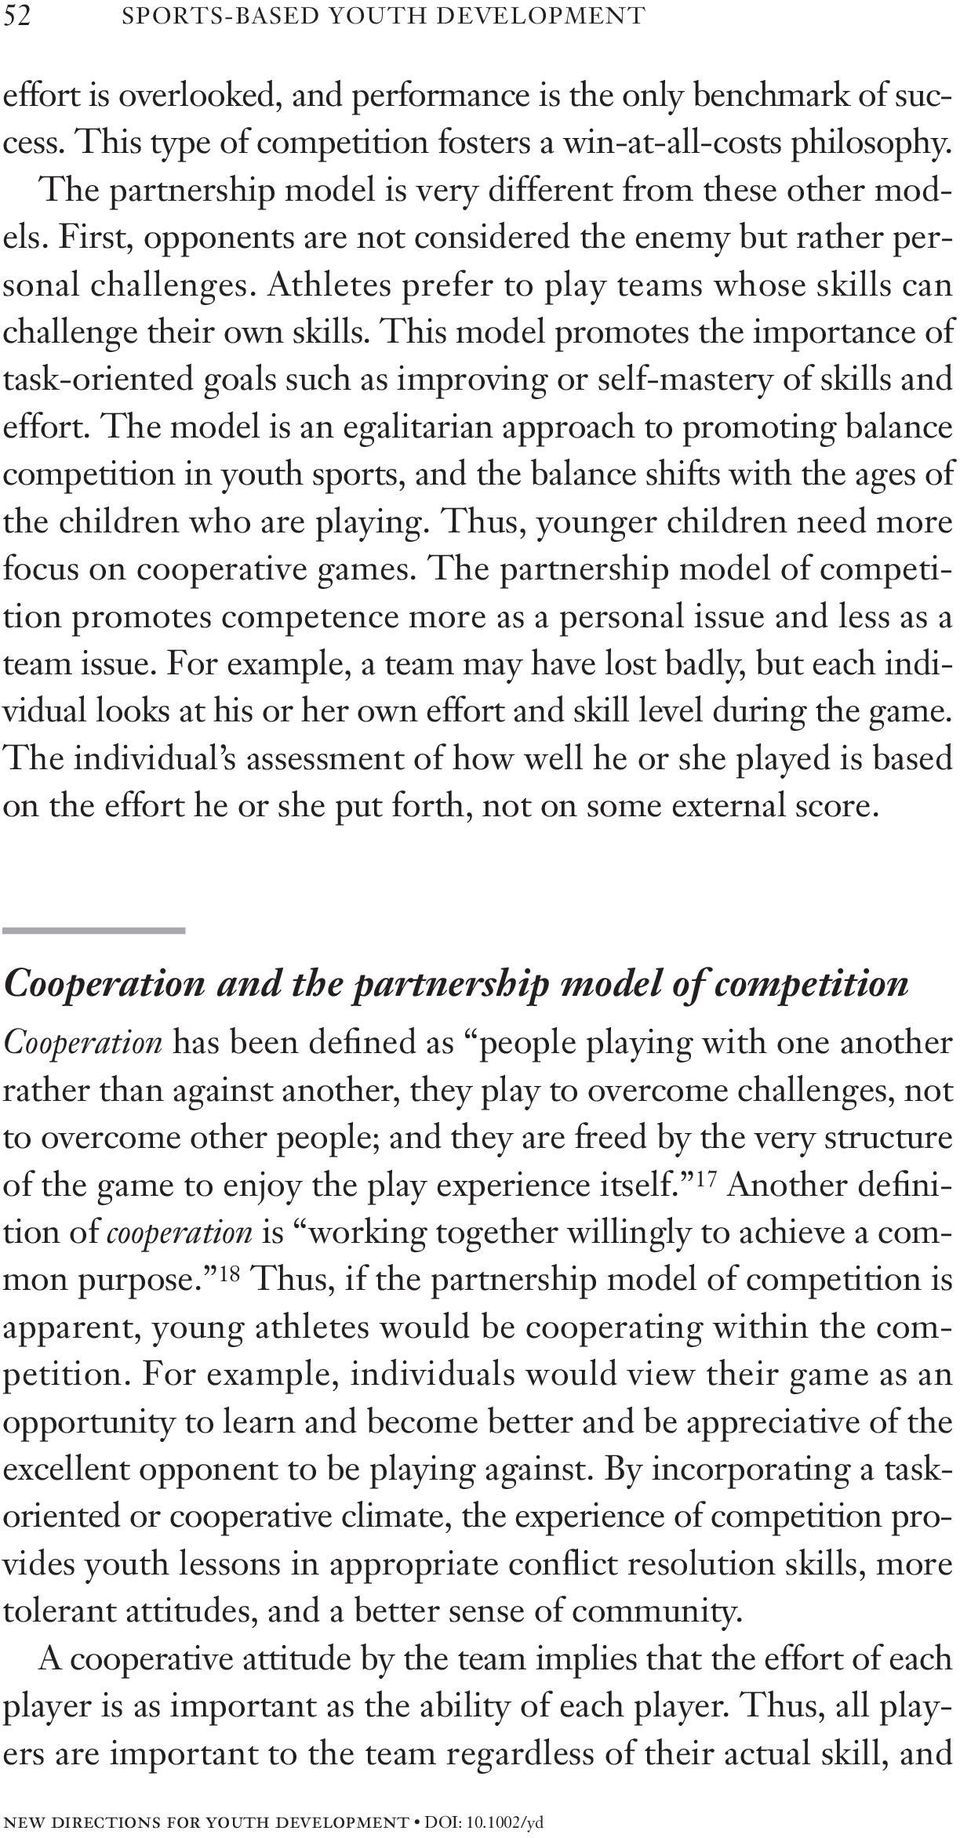 Athletes prefer to play teams whose skills can challenge their own skills. This model promotes the importance of task-oriented goals such as improving or self-mastery of skills and effort.